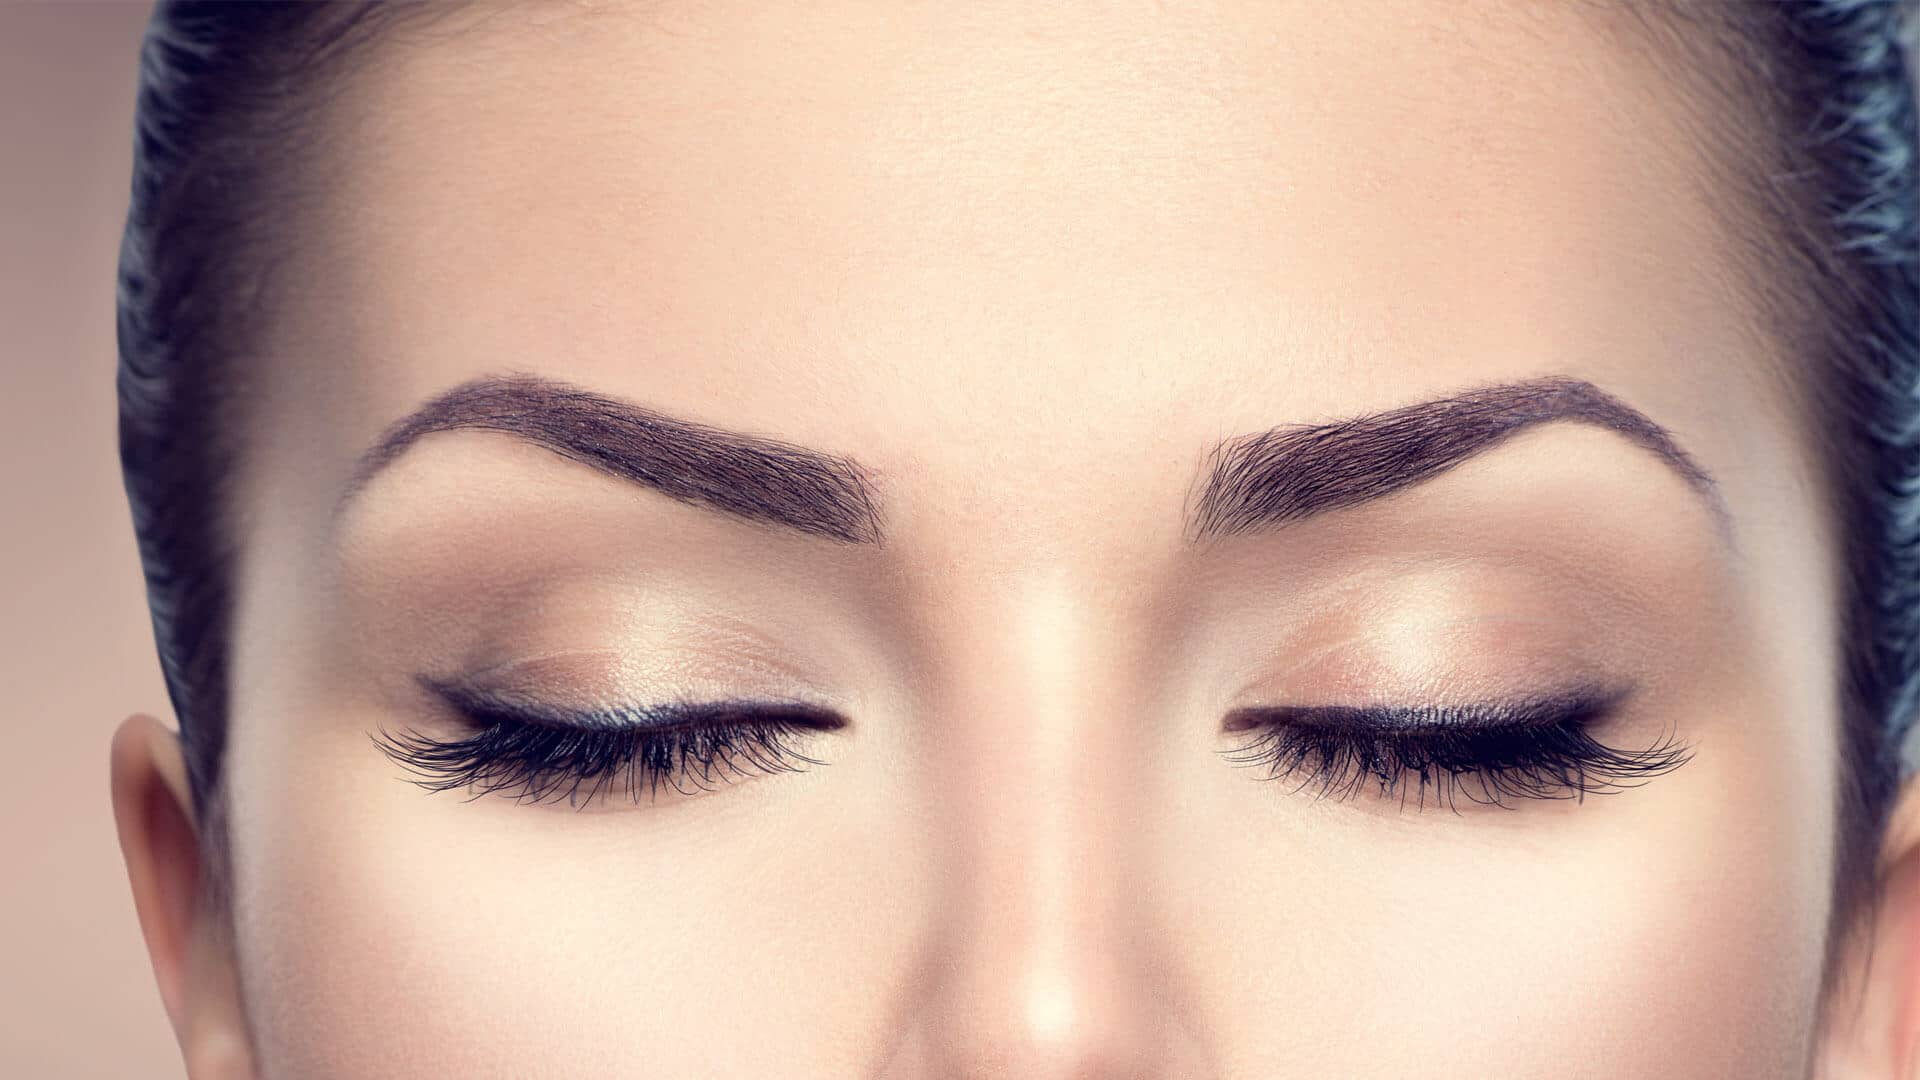 microblading beauty and safety